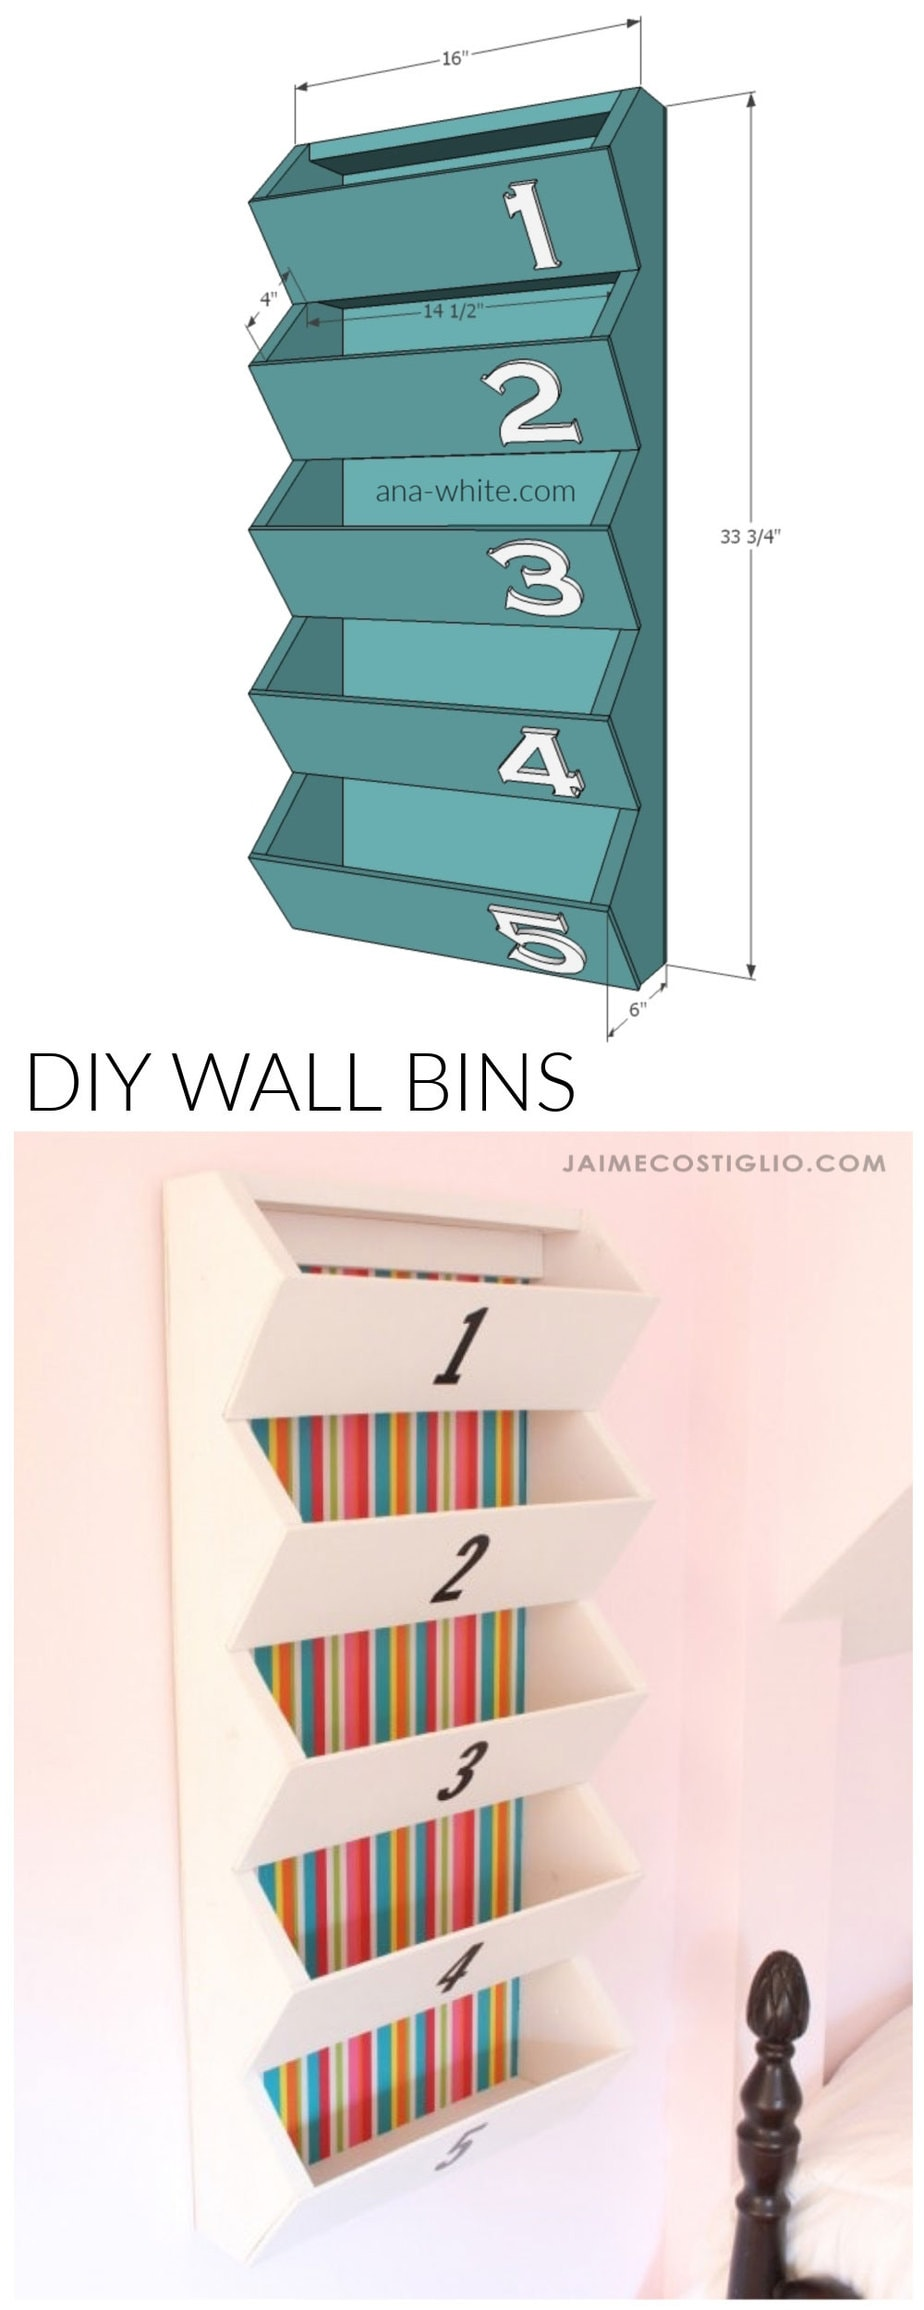 diy wall bins free plans